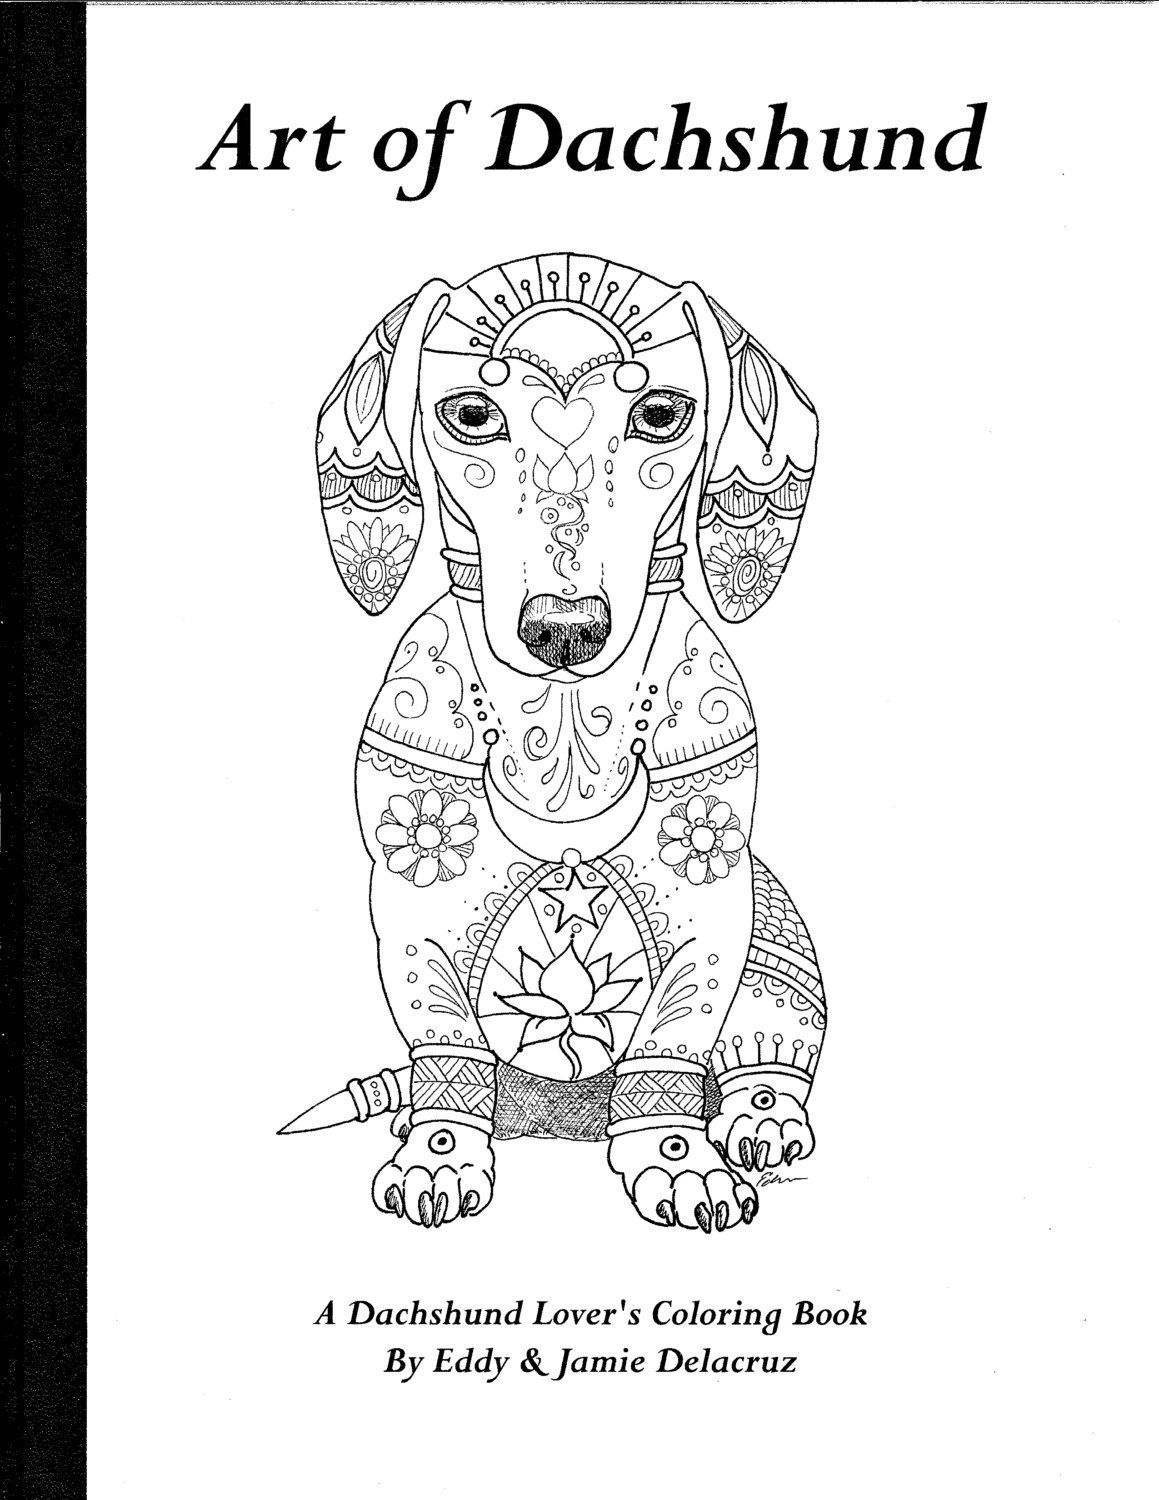 Sw swear word coloring pages etsy - Art of dachshund coloring book physical book di artbyeddy su etsy if you download image sw swear word coloring pages etsy free